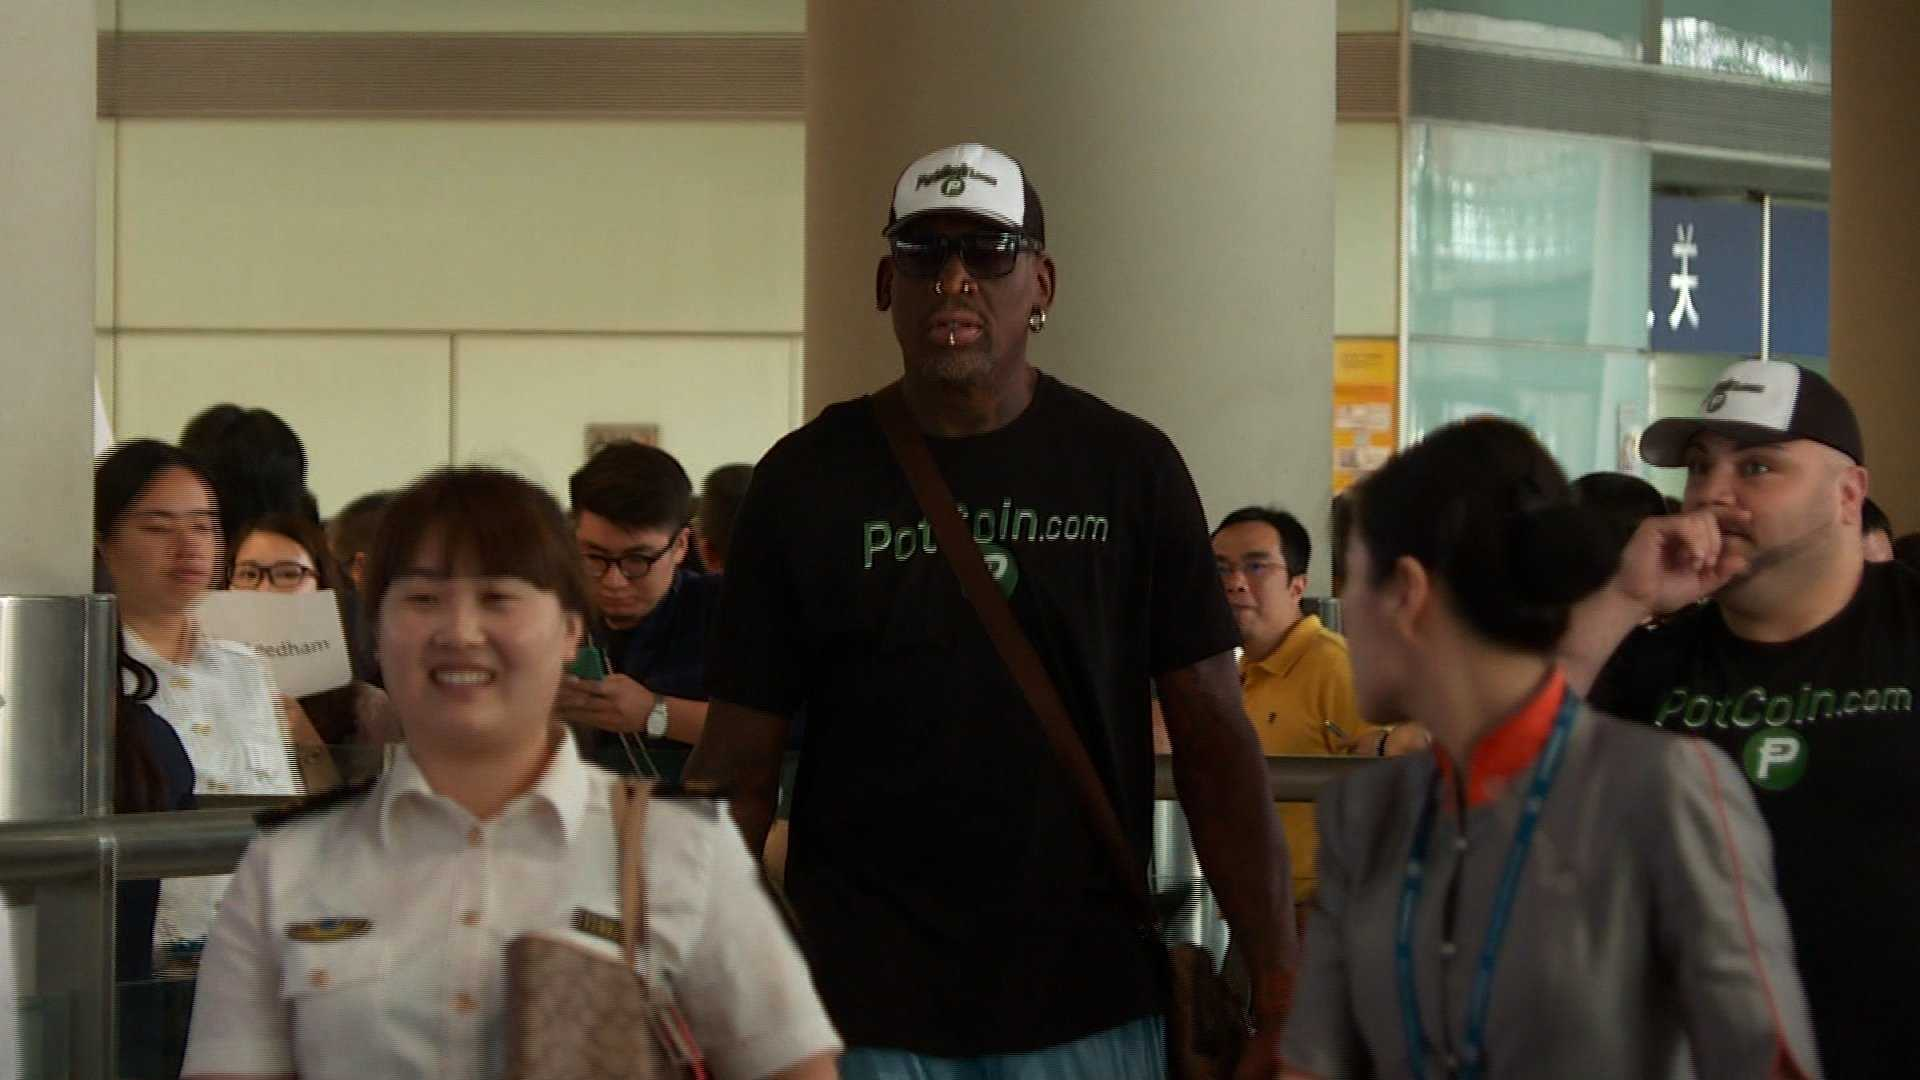 Dennis Rodman Says He's On 'Mission' In New Visit To North Korea